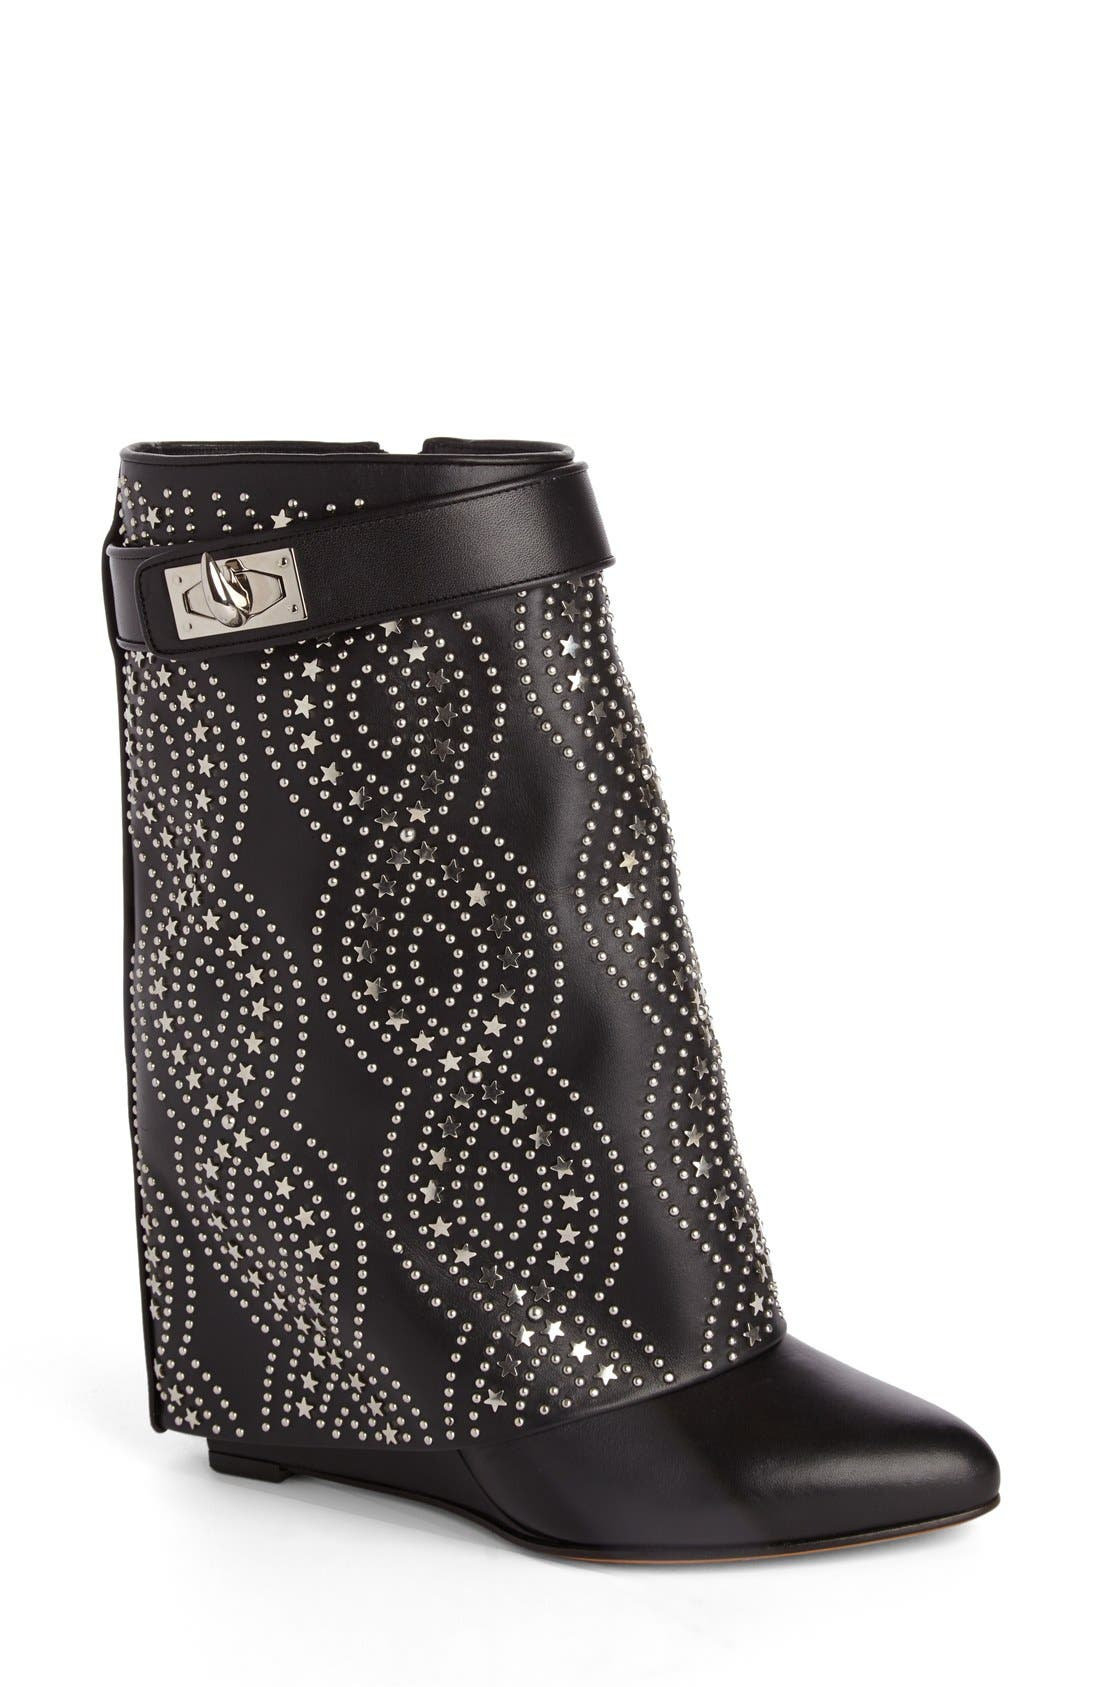 GIVENCHY Studded Shark Tooth Pant Leg Bootie